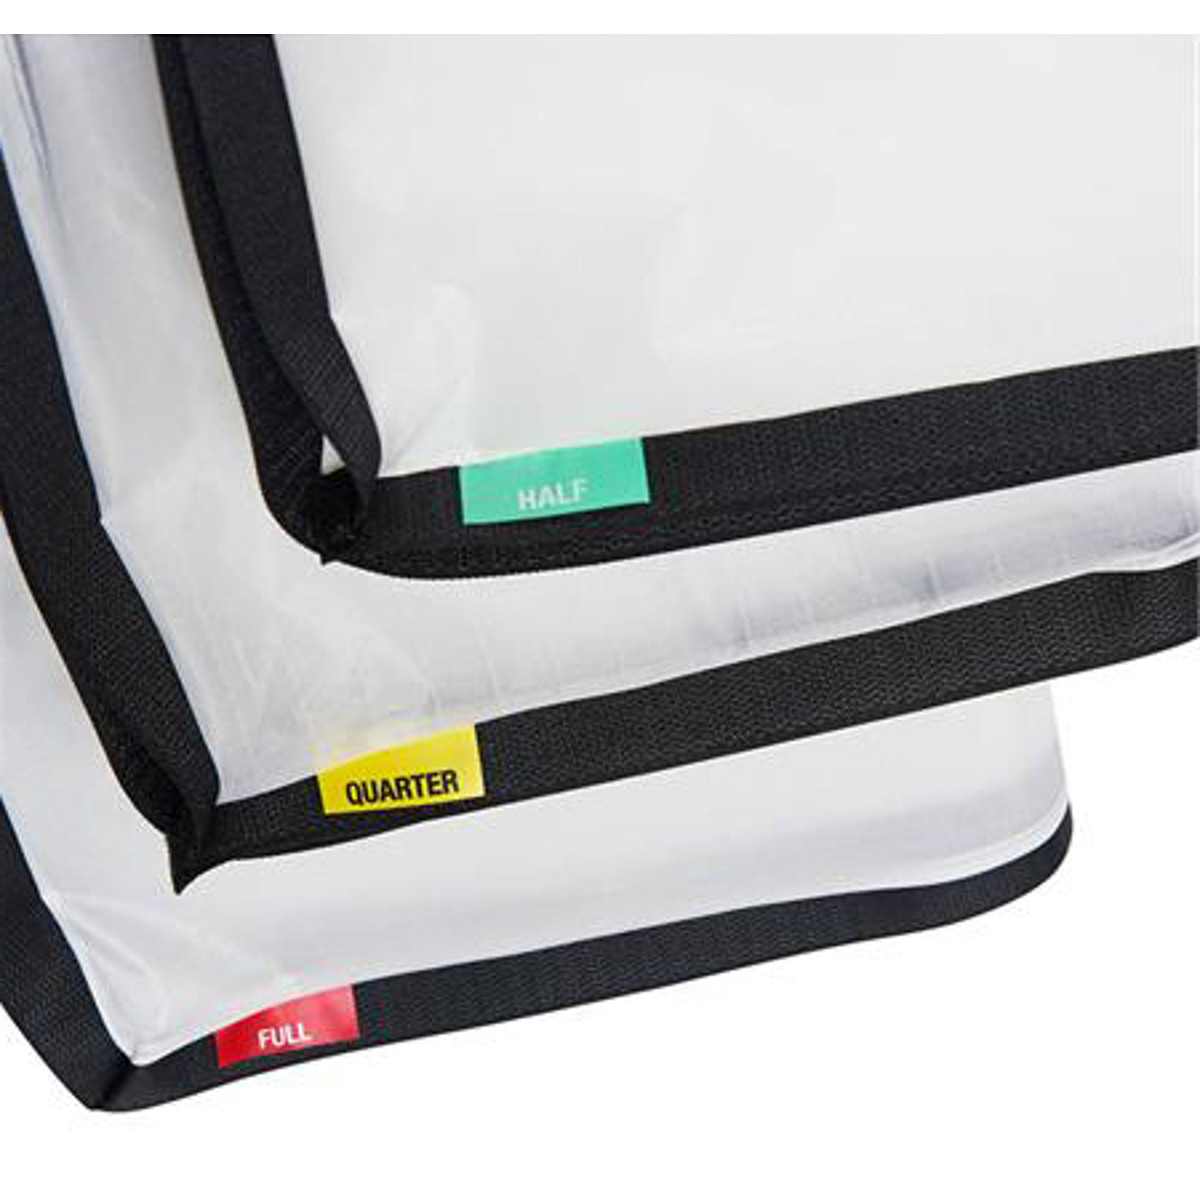 Snapbag Cloth set Gemini 1/4, 1/2, Full